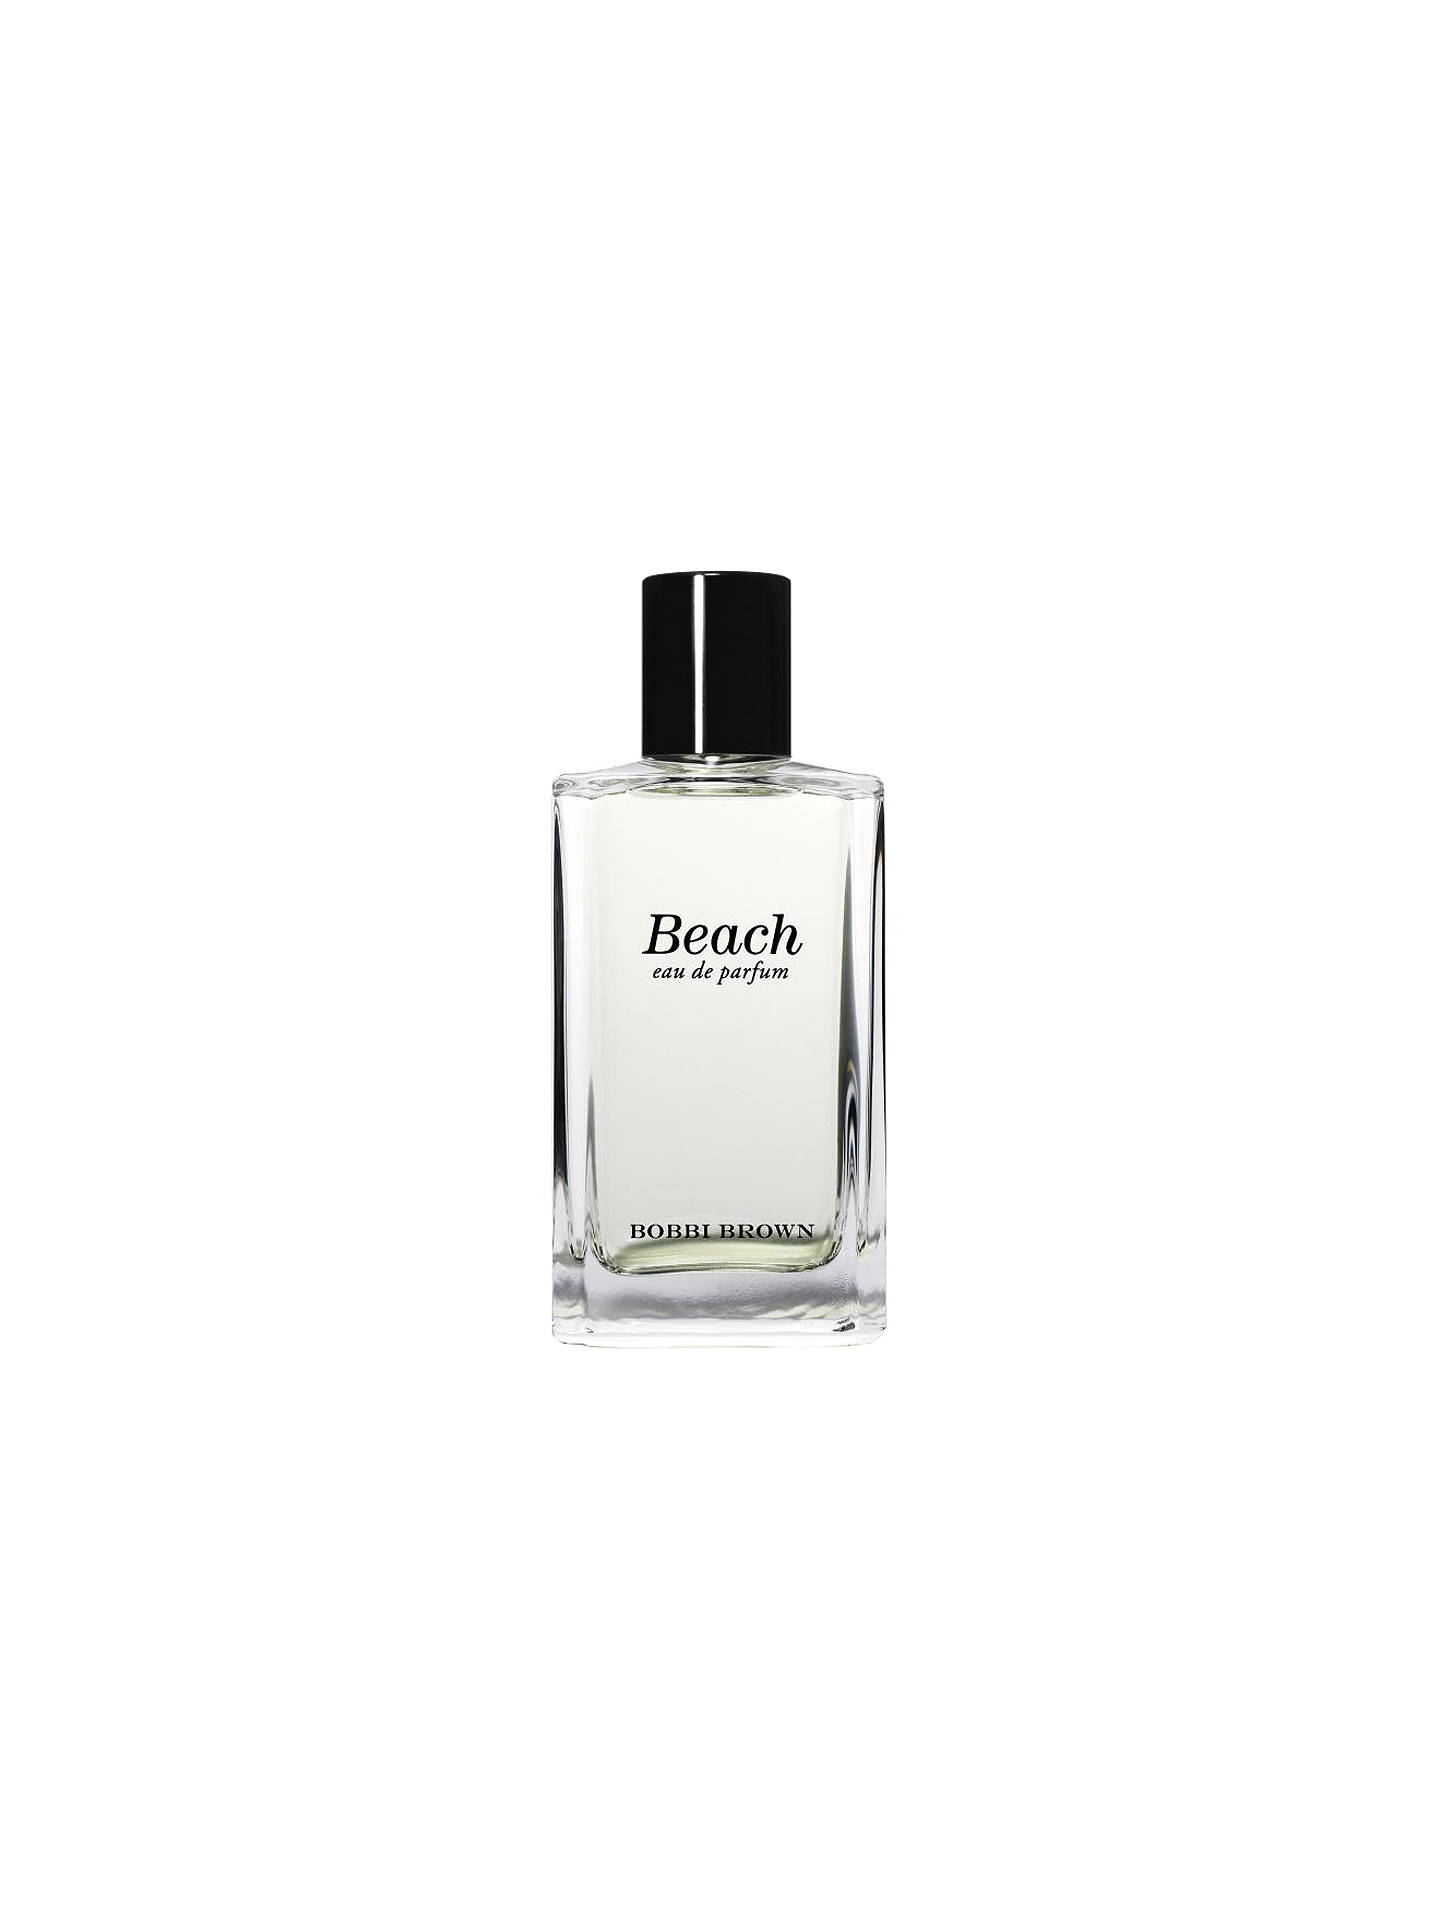 BuyBobbi Brown Beach Fragrance - Eau de Parfum, 50ml Online at johnlewis.com